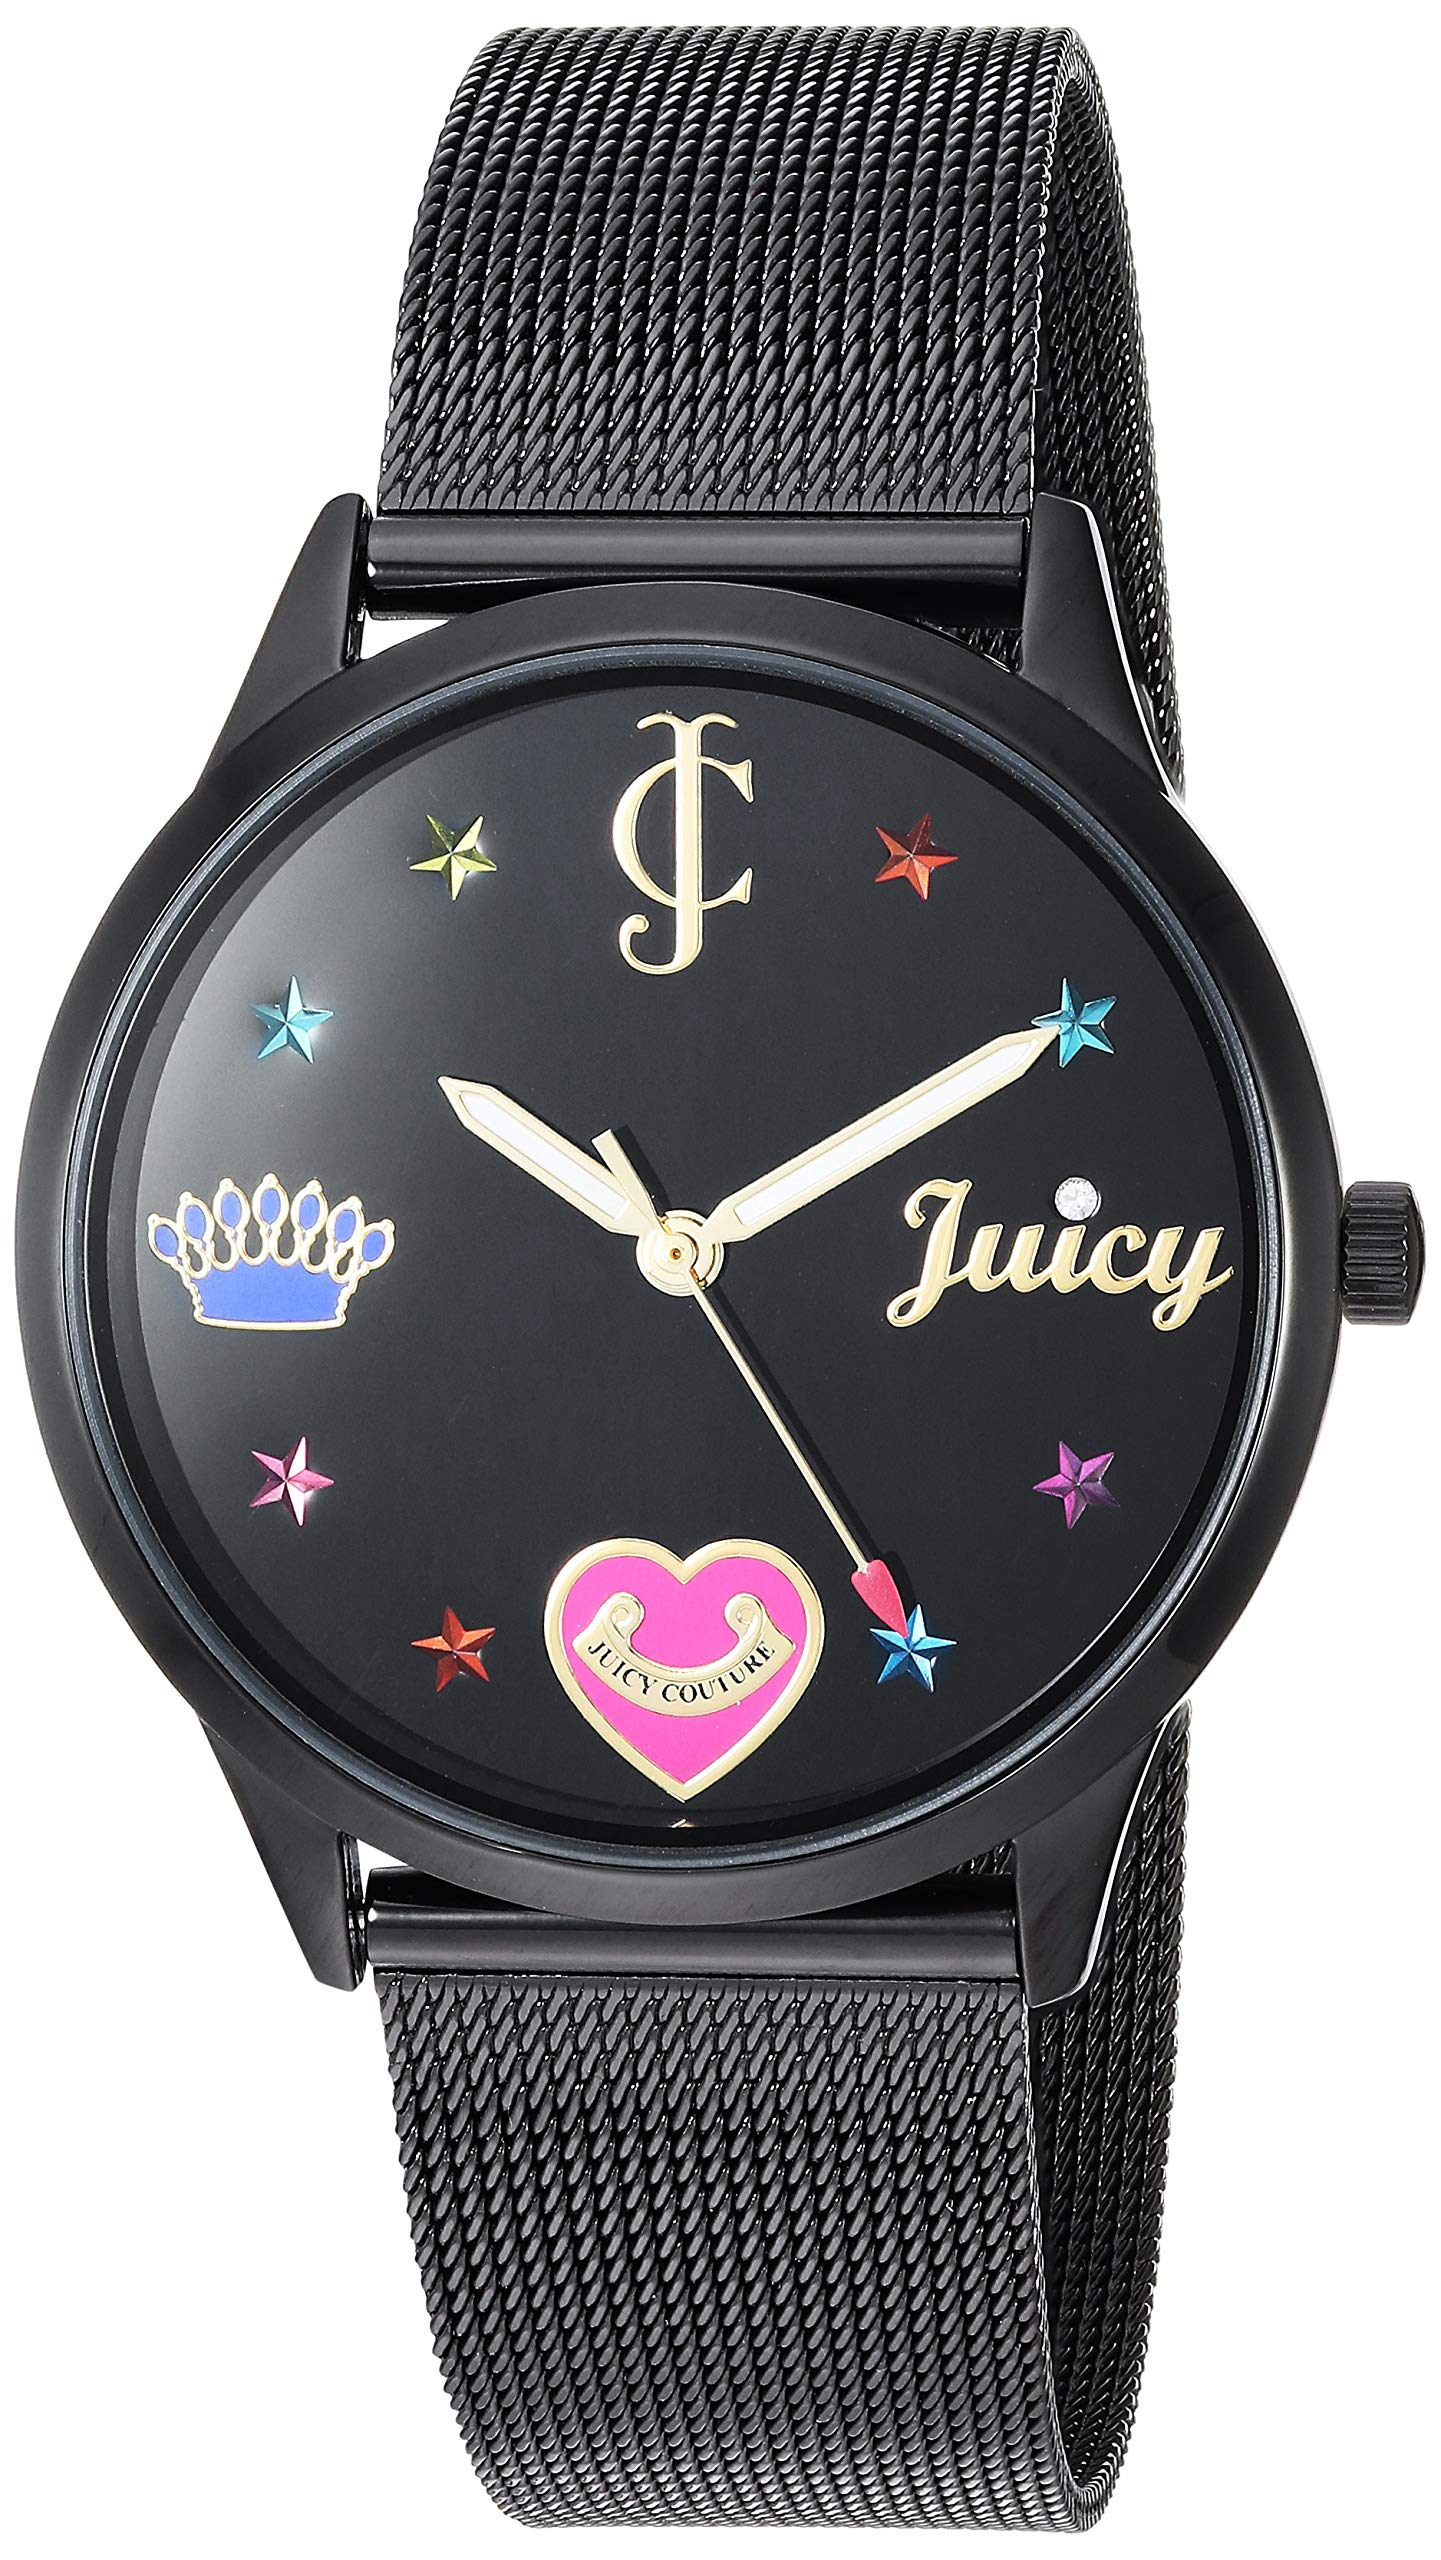 Juicy Couture Black Label Women's  Black Mesh Bracelet Watch